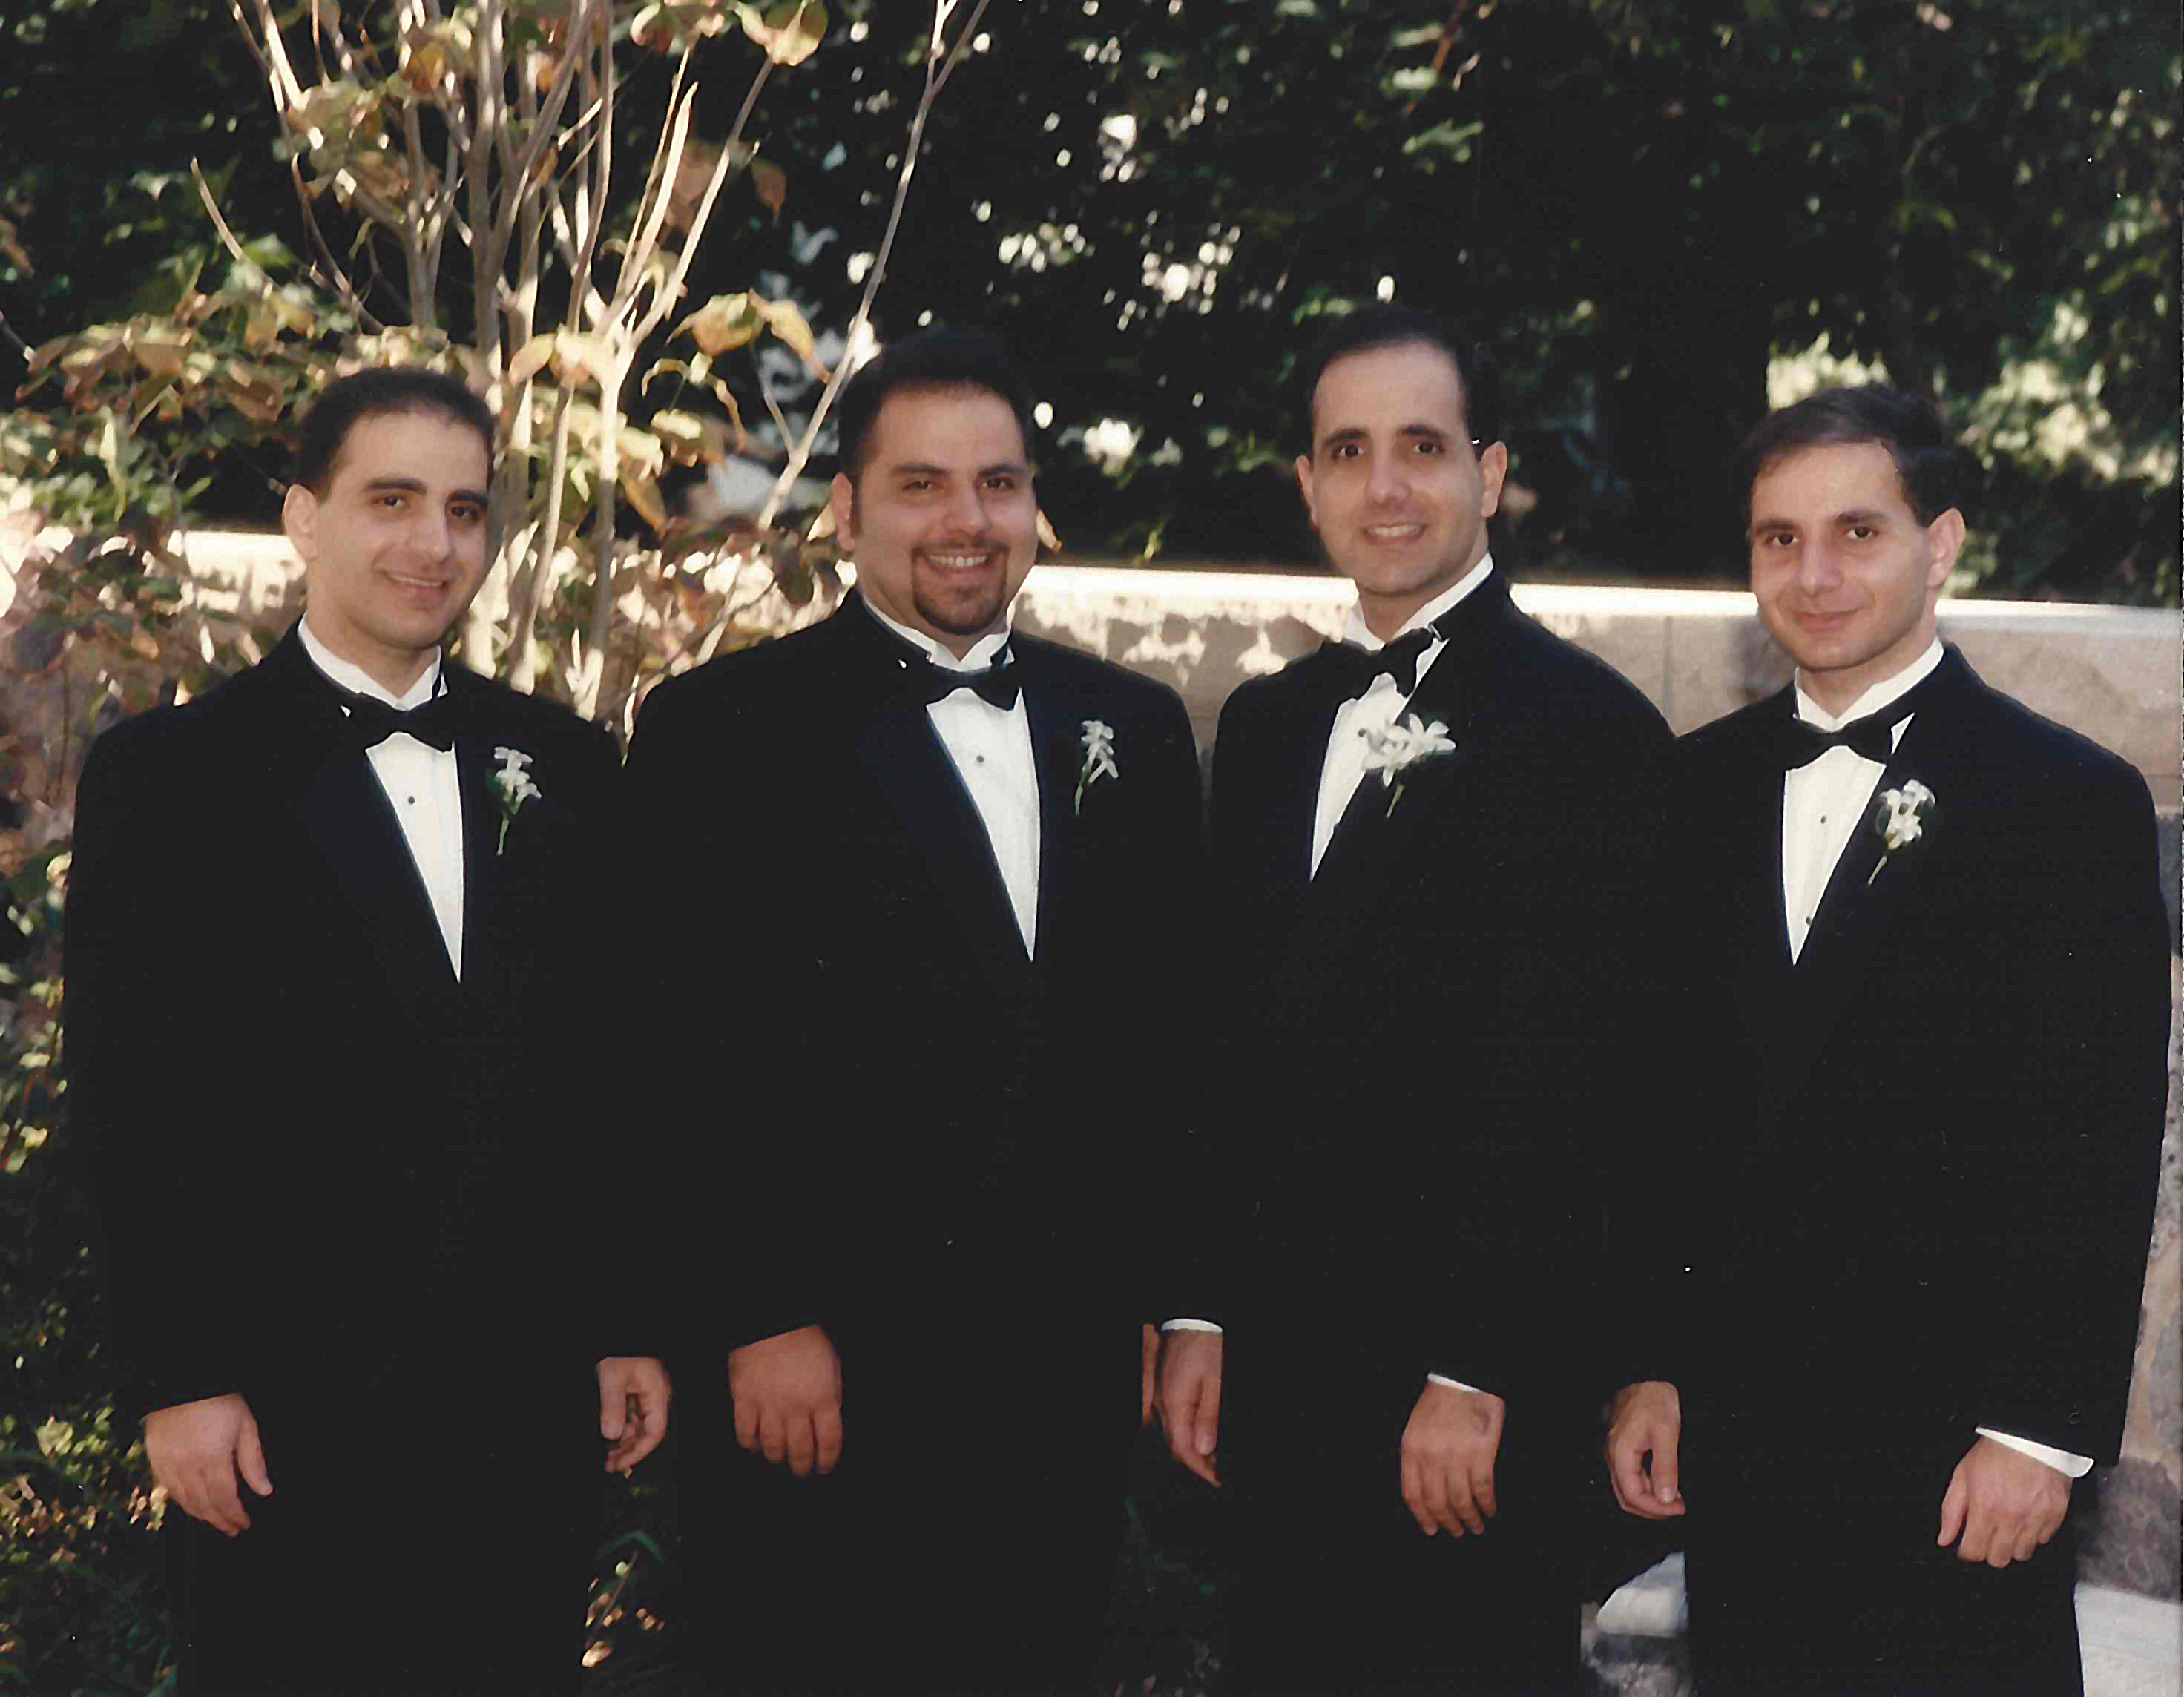 farjo boys at laiths wedding.jpg